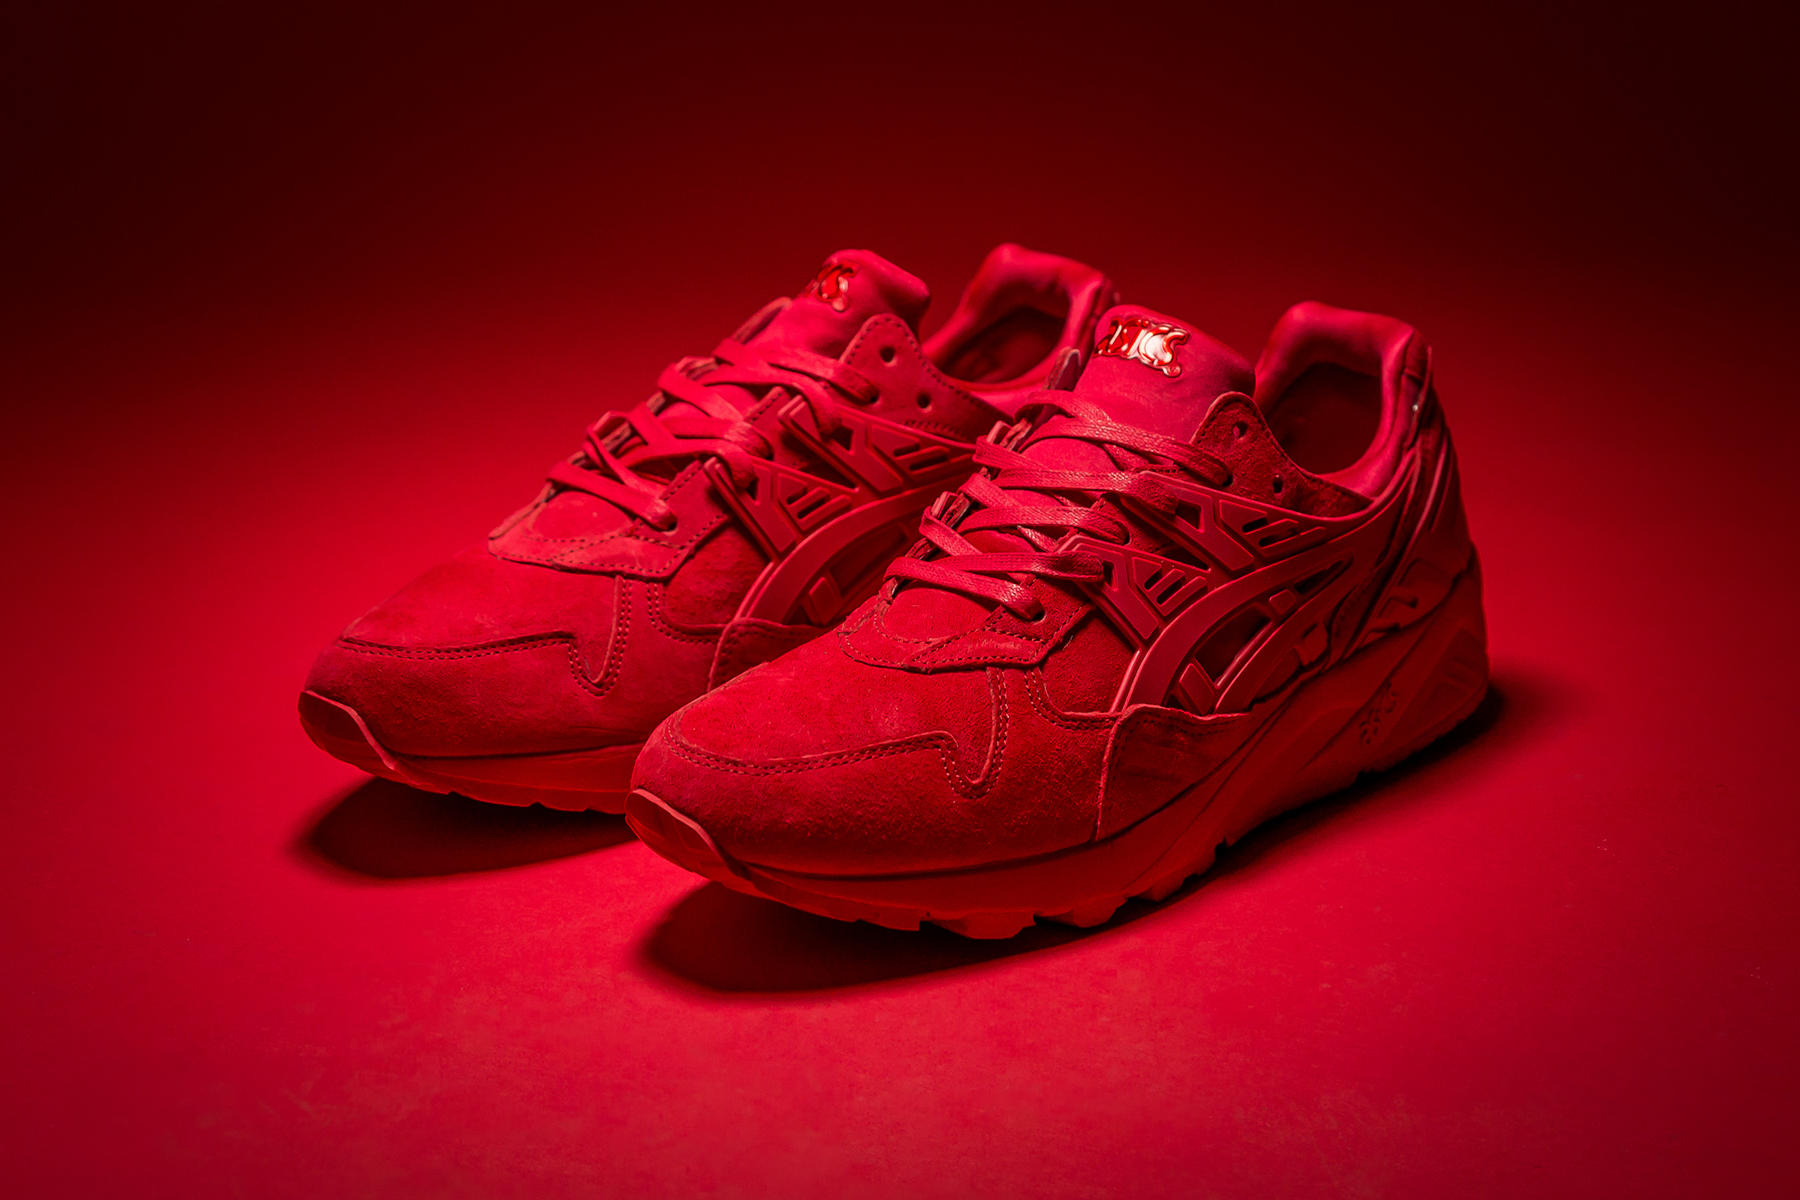 ASICS Gel Kayano Trainer Triple Red   Shoes   Asics, Red